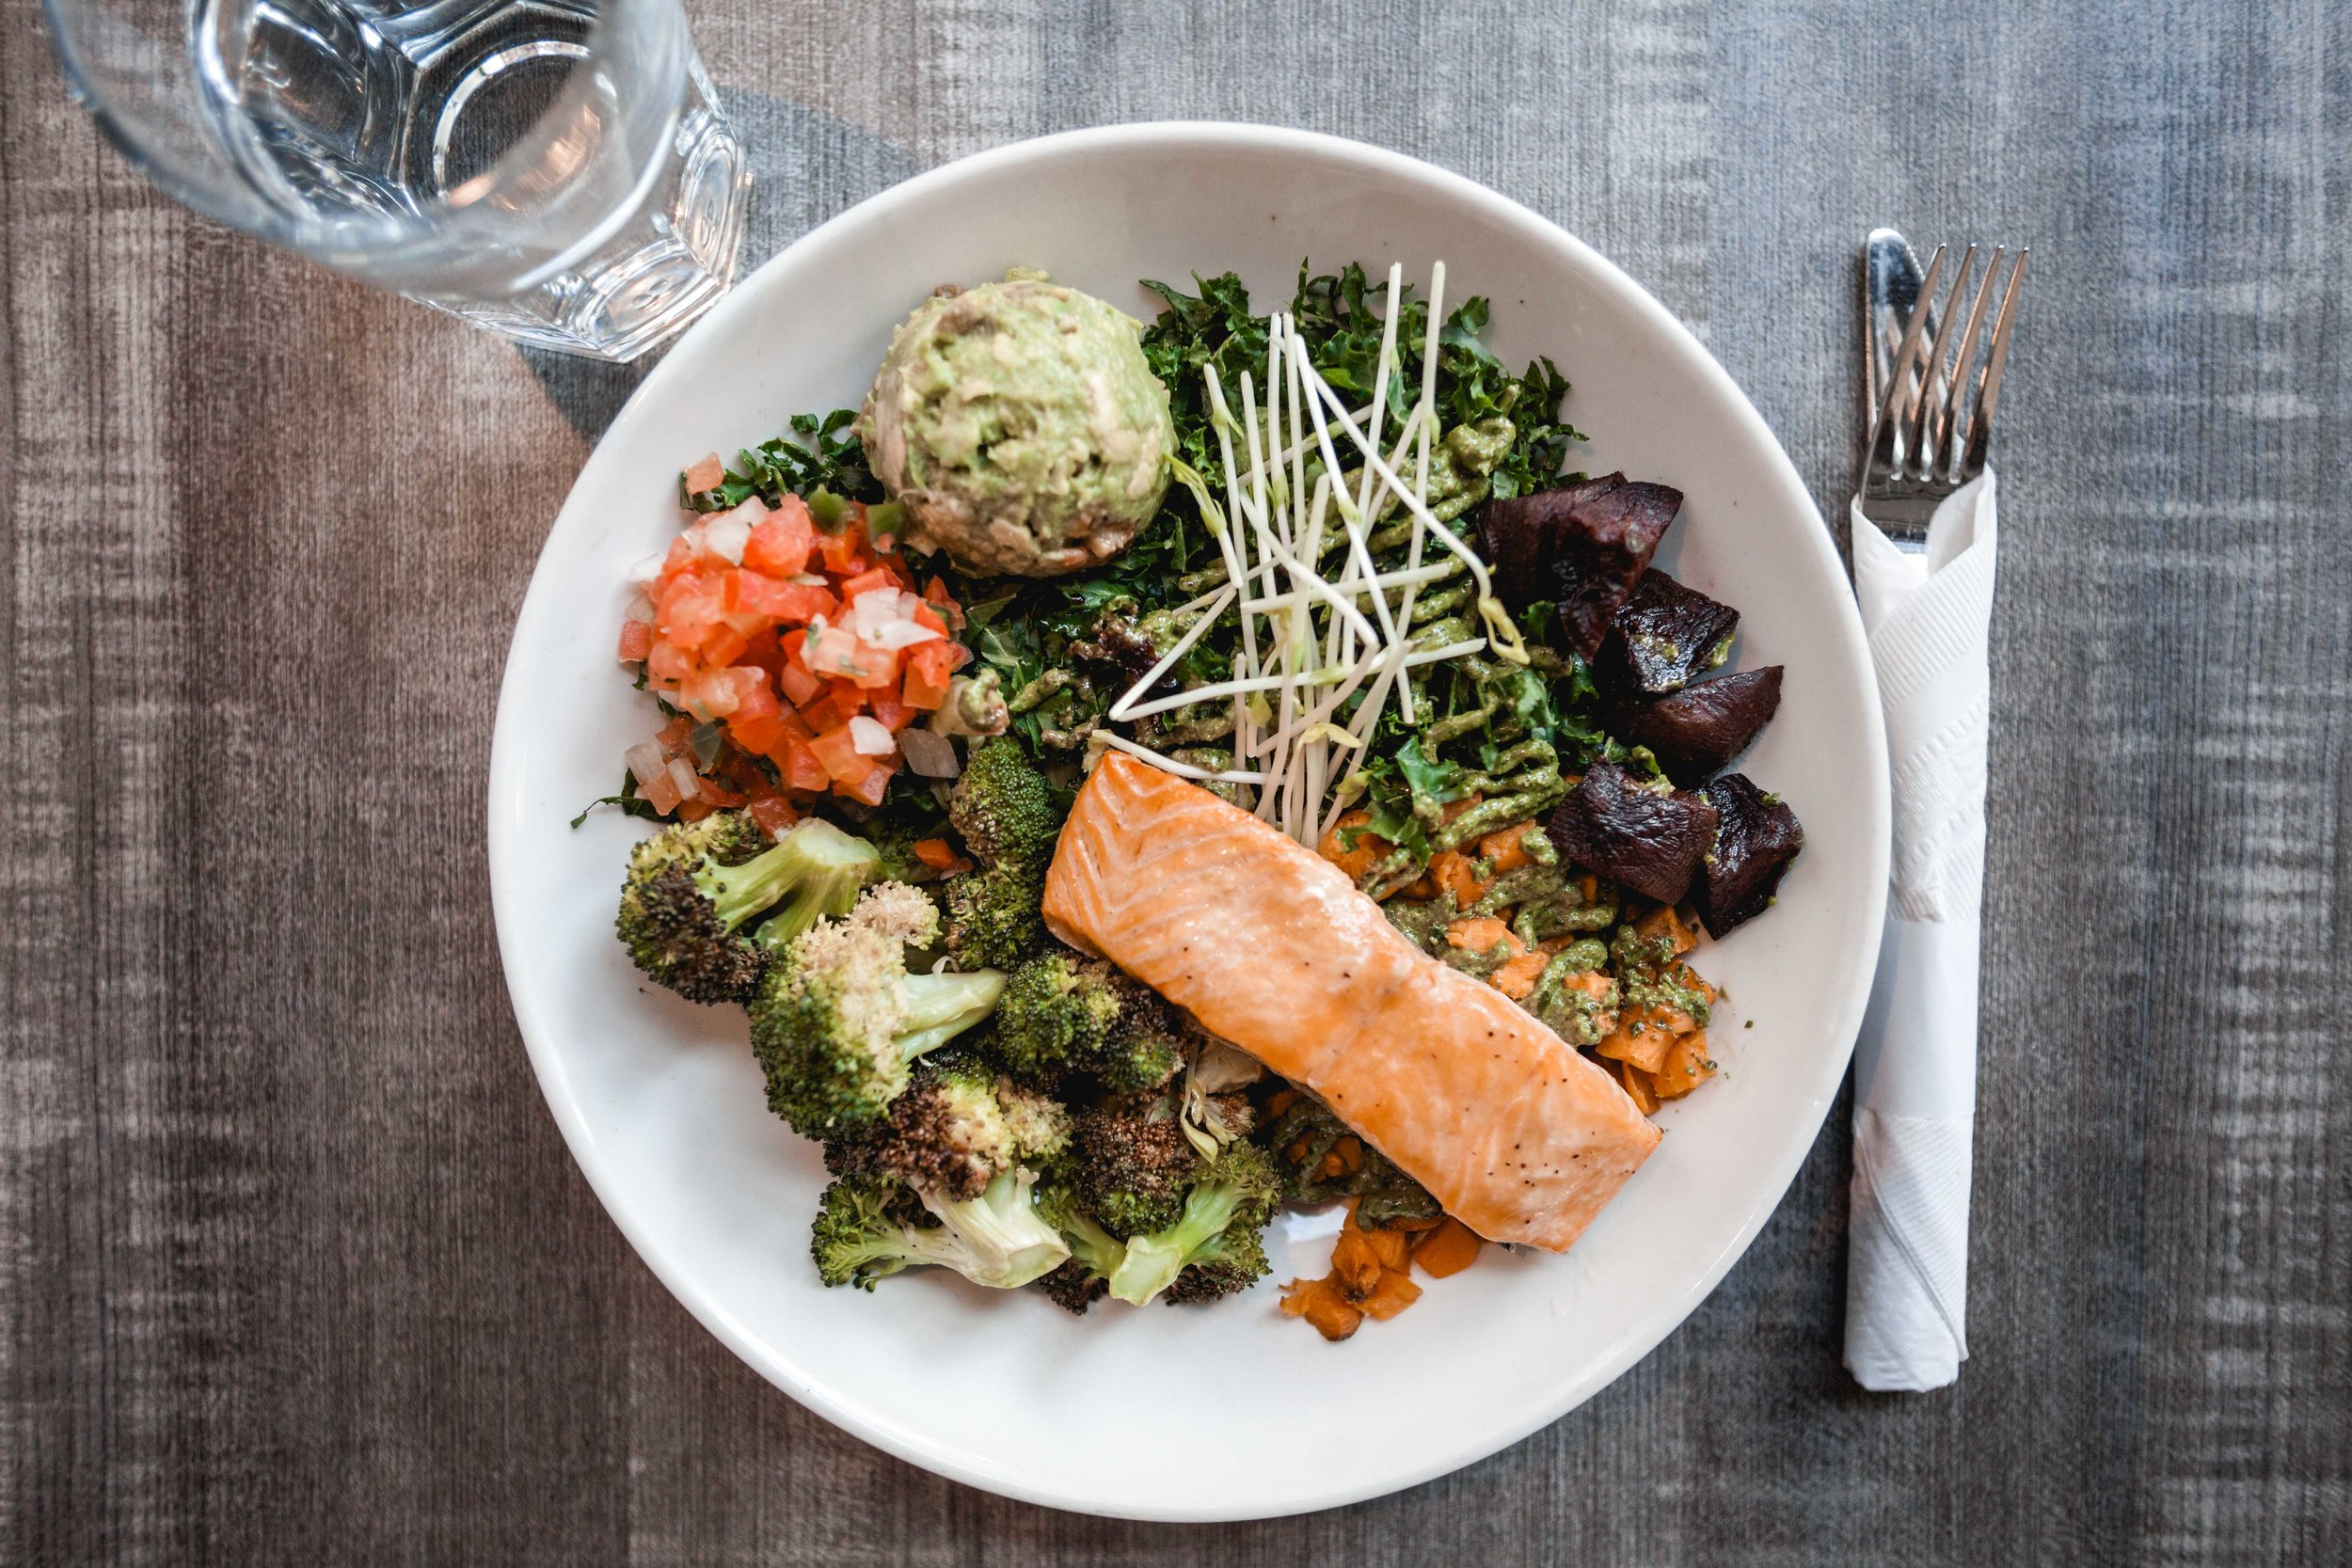 Kale, Salsa Fresca, Avocado, Sprouts, Roasted Broccoli, Shredded Beets, Hemp Seeds, Almonds, Roasted Sweet Potato, Pesto Dressing & Salmon